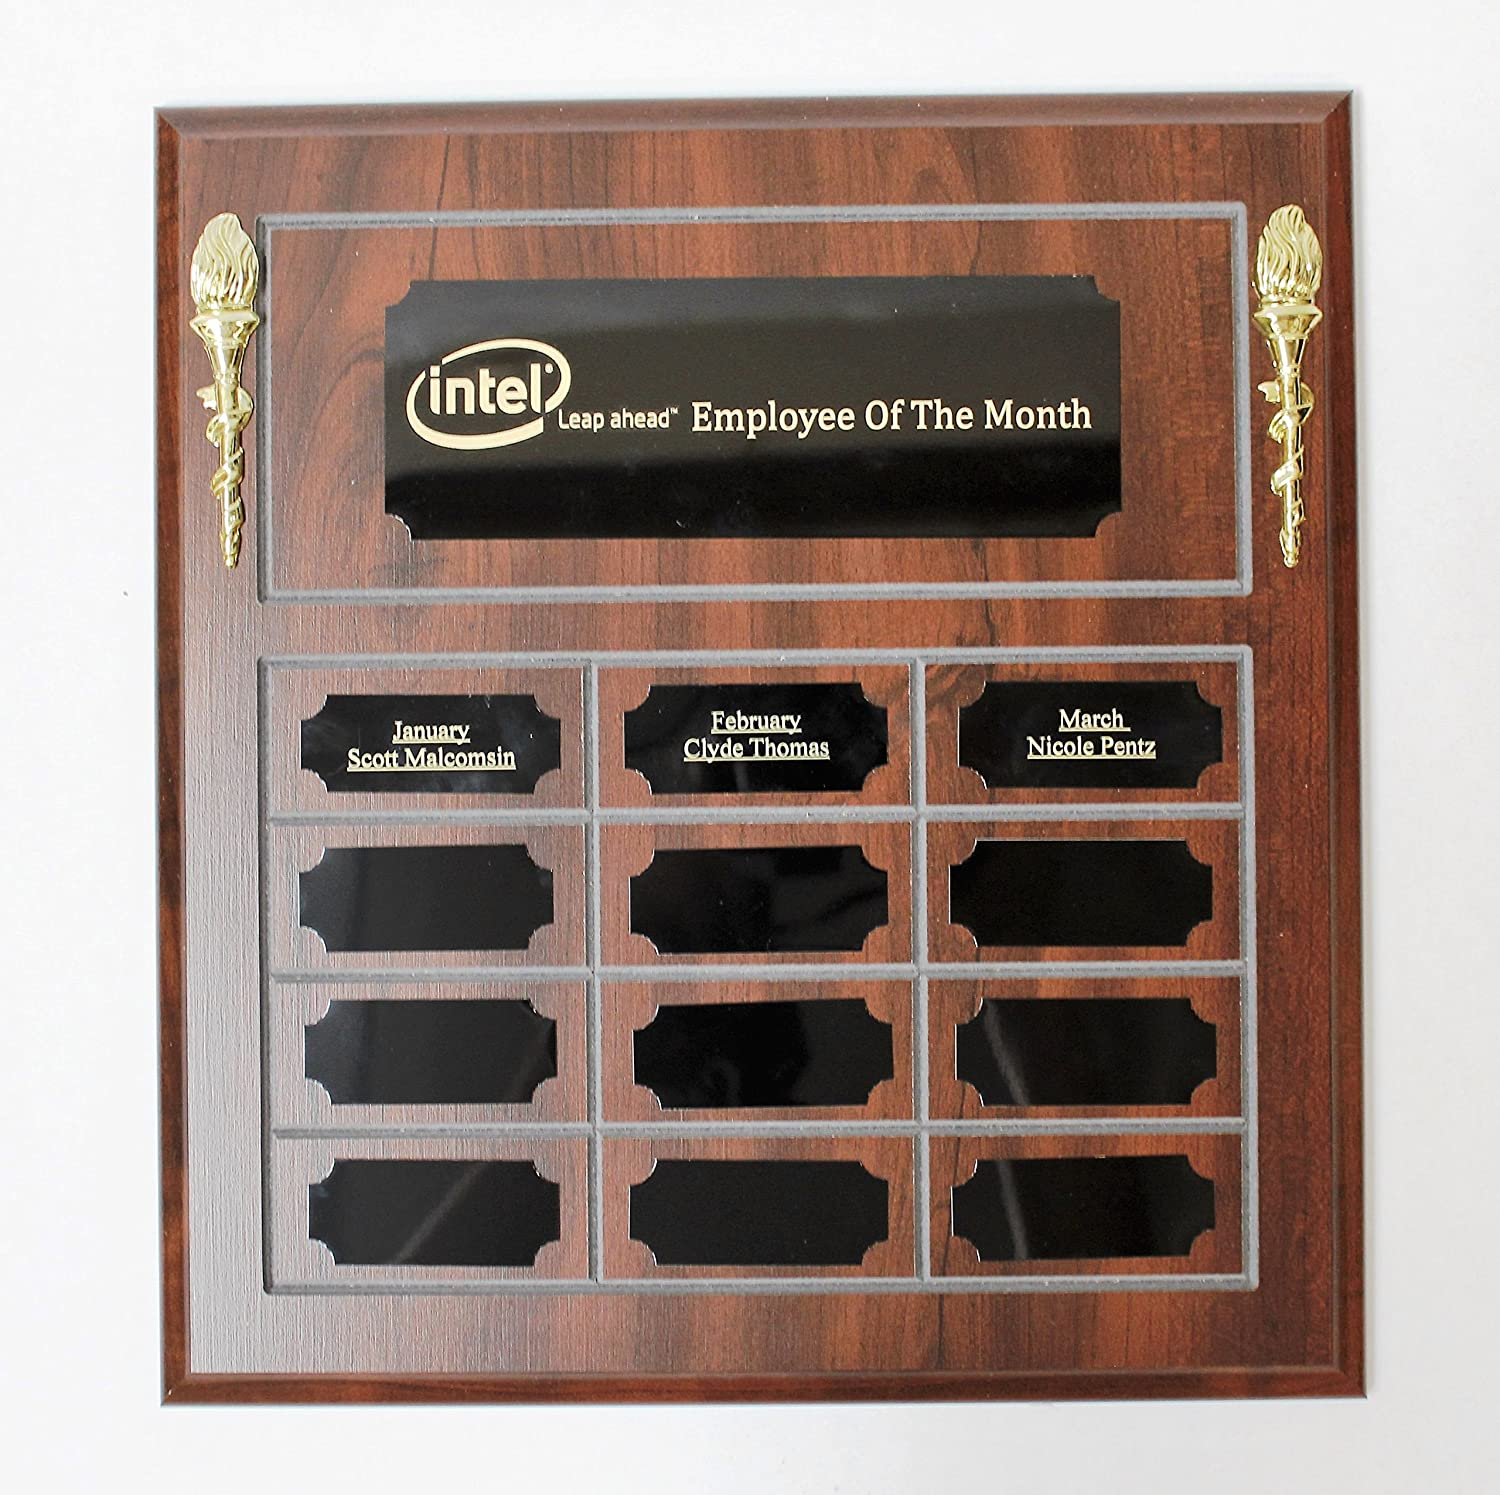 employee of the month plaque template  Amazon.com : Employee Of The Month Perpetual Plaque, Wooden Plaque ...